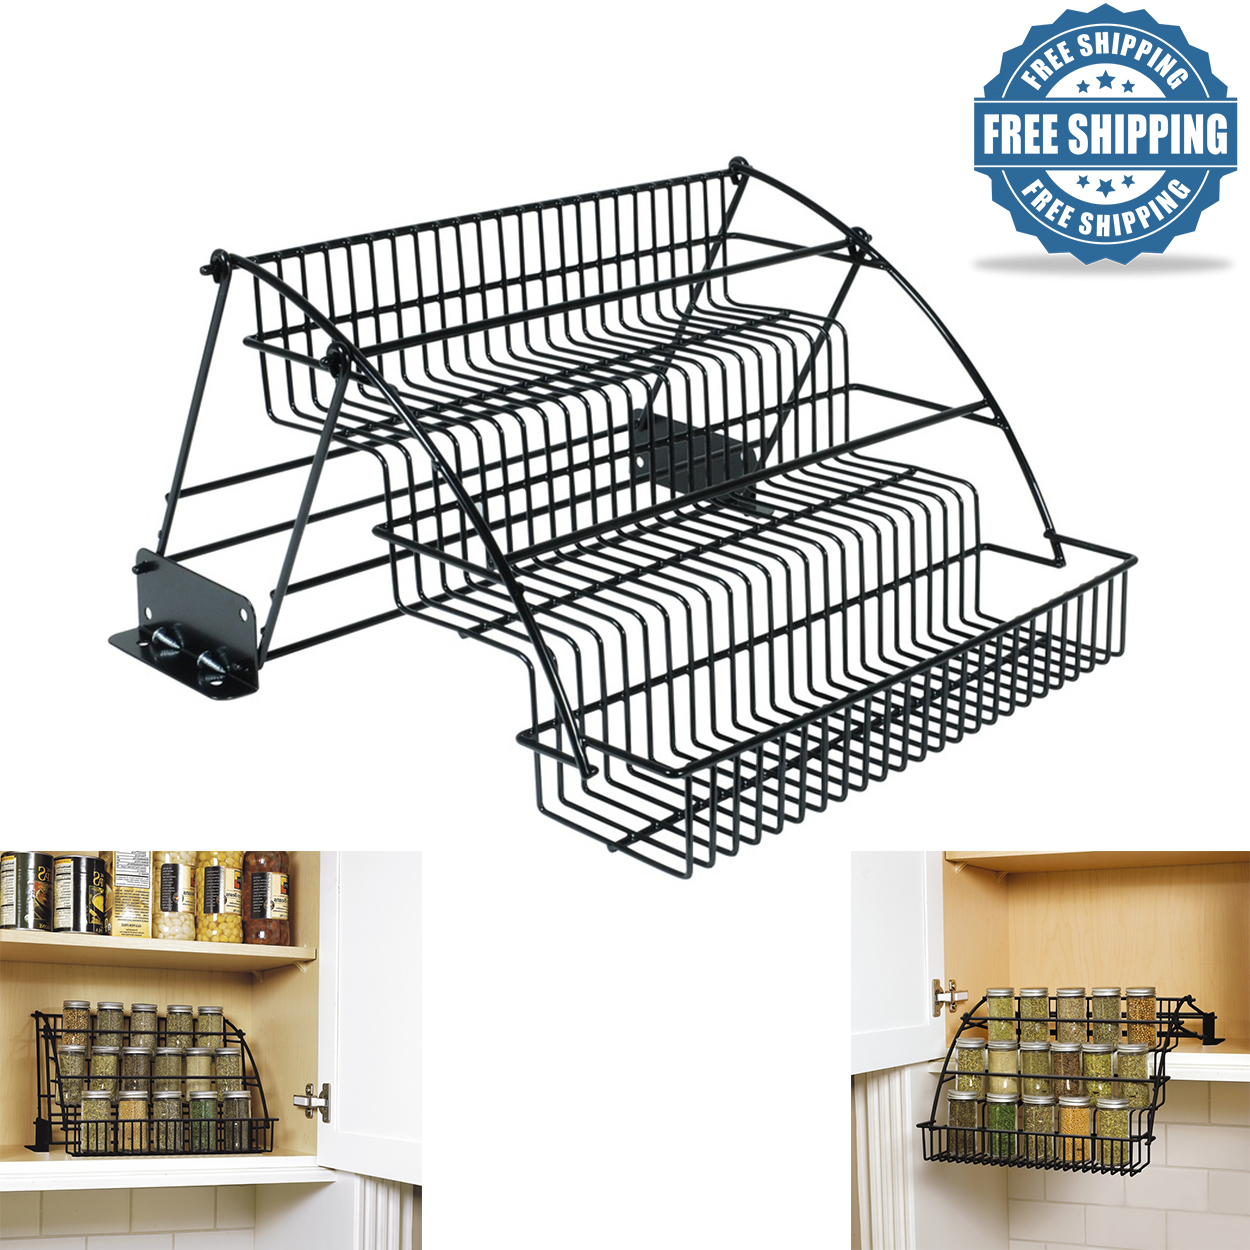 Details About Rubbermaid Pull Down Cabinet Spice Metal Rack Tier Organizer Wire Holder Storage